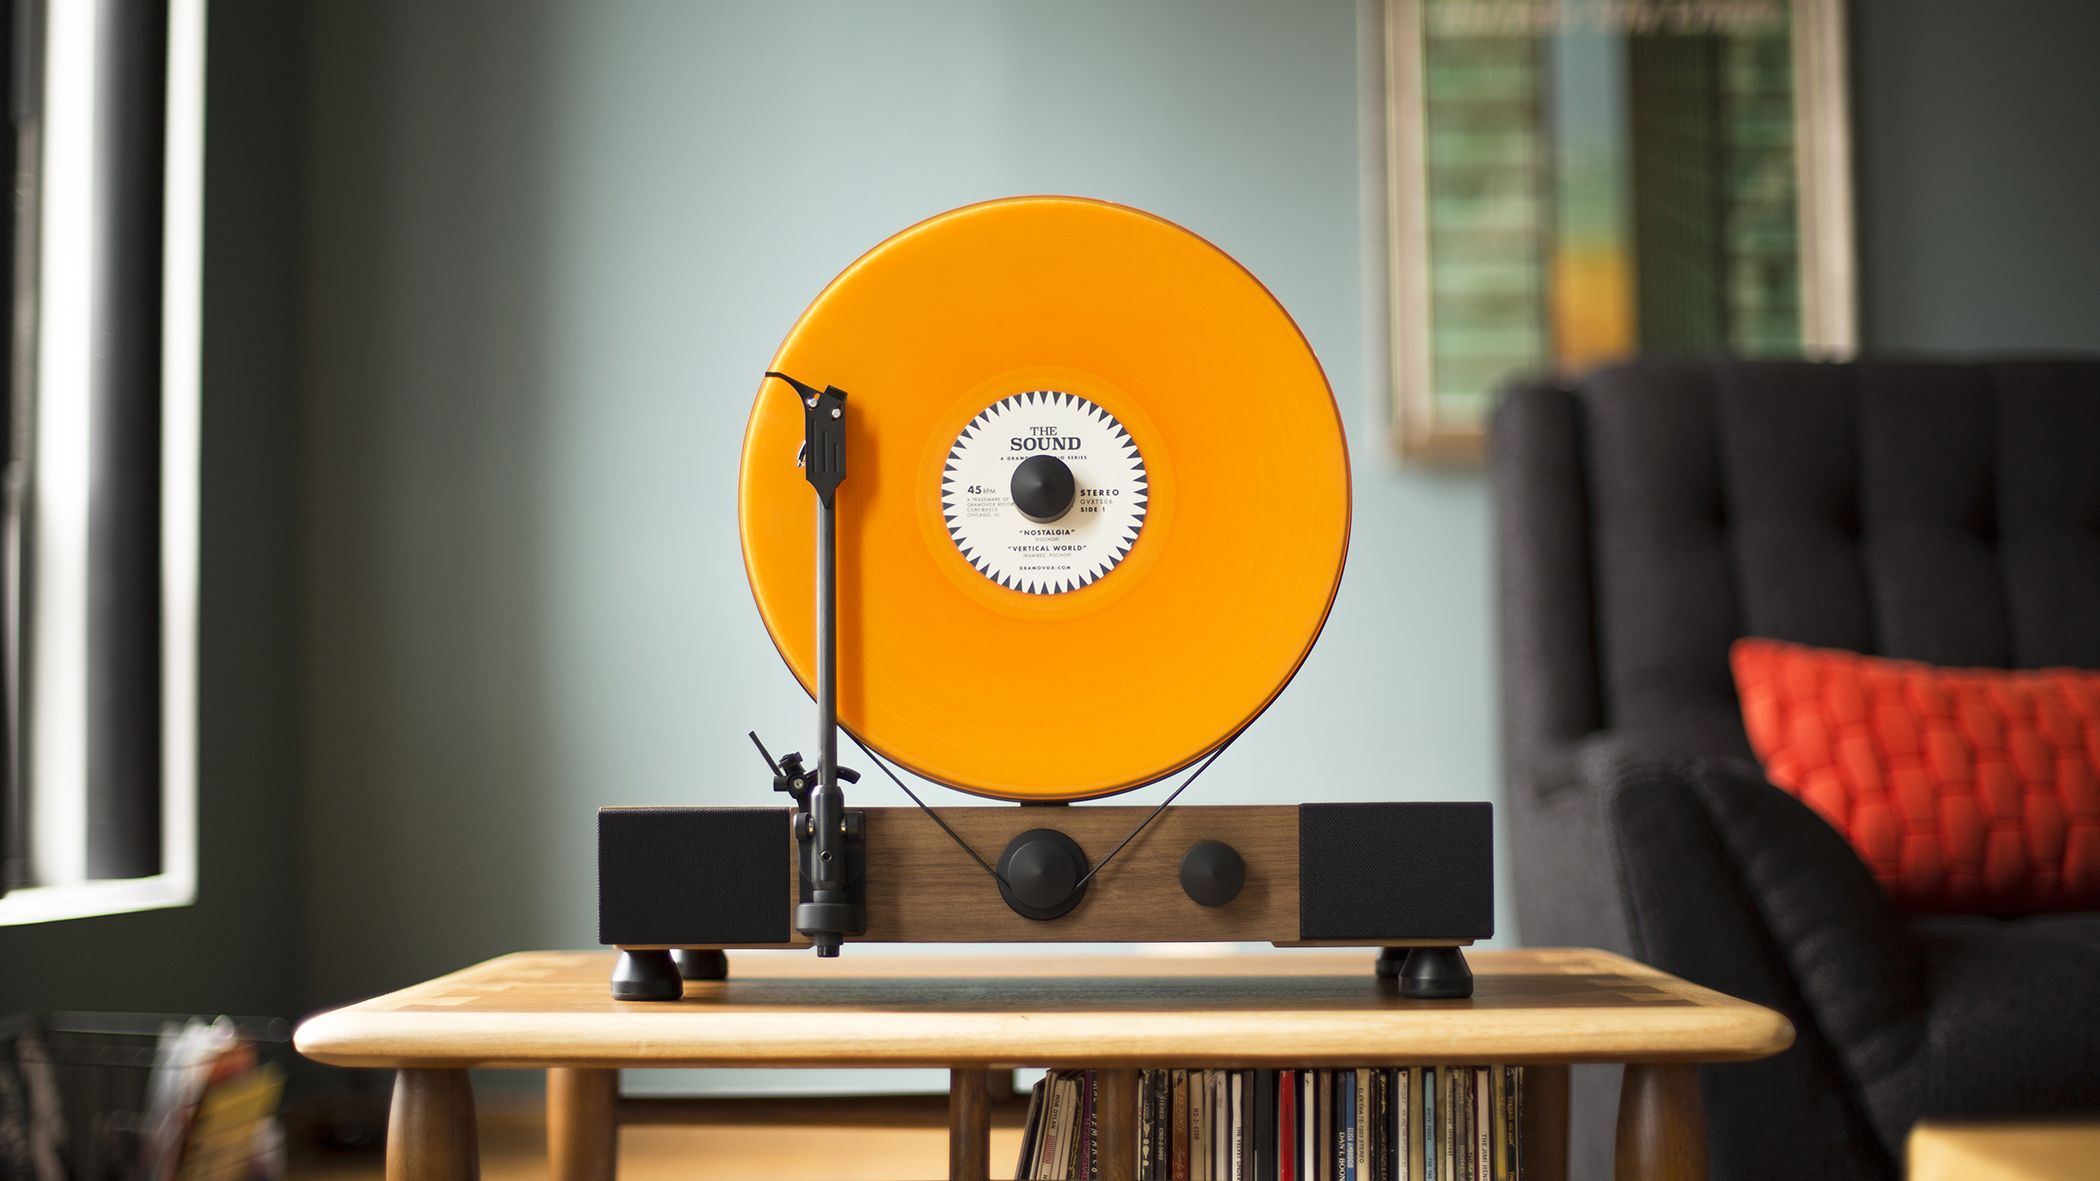 Gramovox Floating Record Vertical Turntable Vinyl Gone Vertical Built In Chicago Record Player Records Vinyl Turntable Tocadiscos Tornamesa Audiovisual